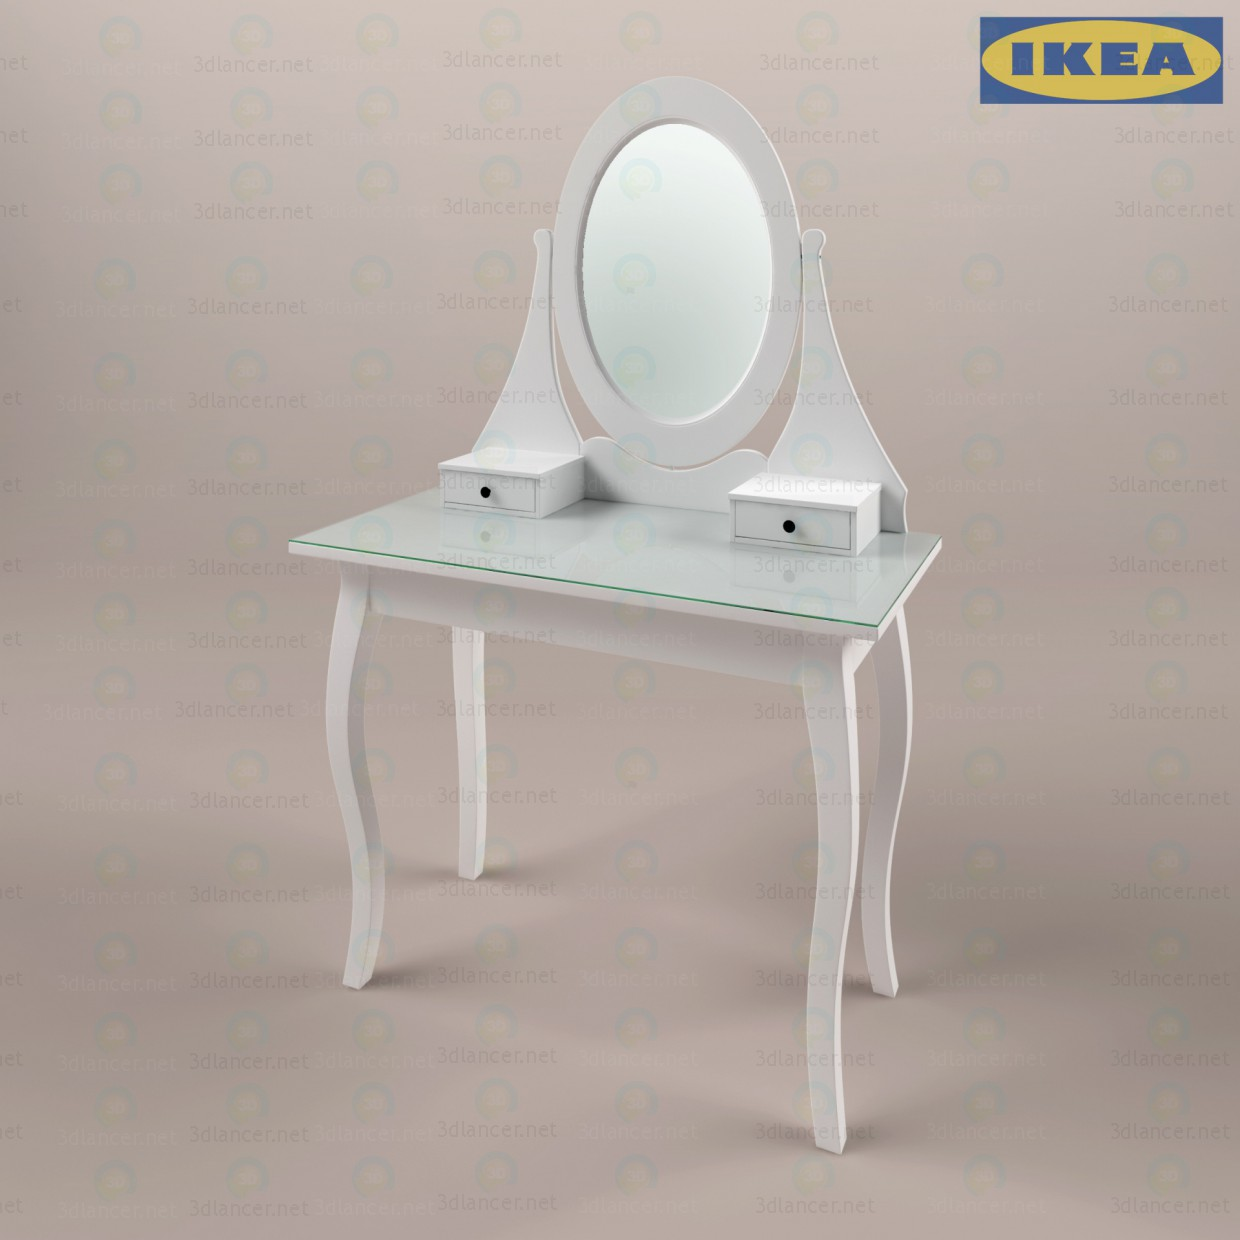 ikea dressing table cool diy cupcake holders with ikea dressing table good malm dressing table. Black Bedroom Furniture Sets. Home Design Ideas